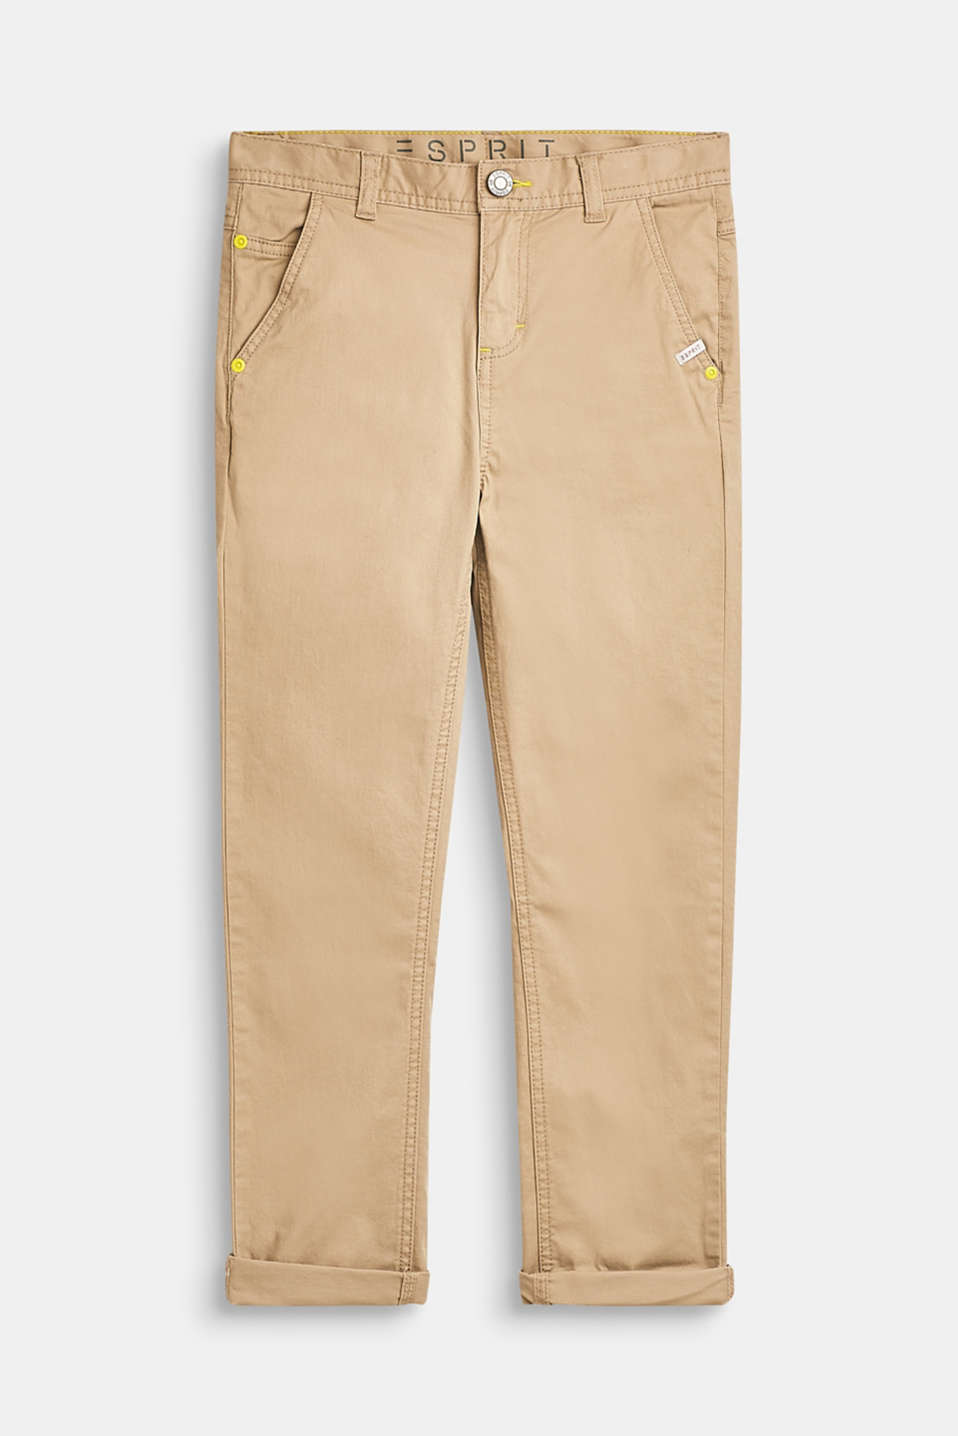 Esprit - Stretch cotton chinos with an adjustable waistband